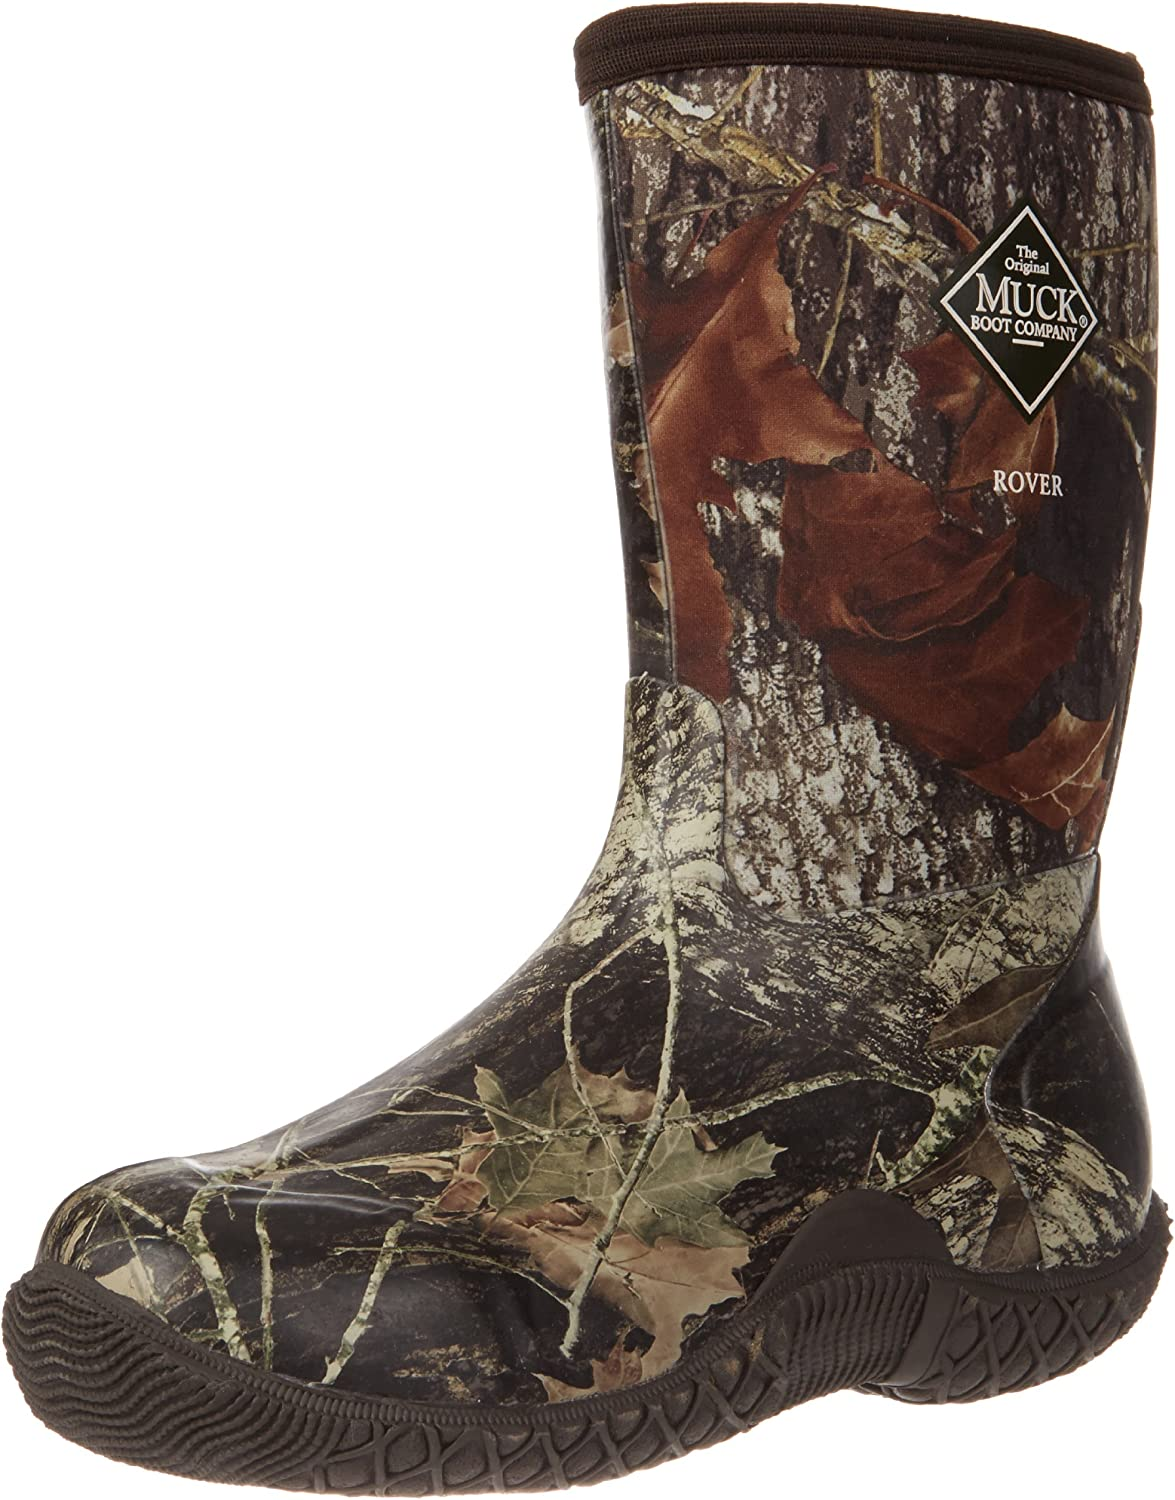 Youth Camo Muck Boots